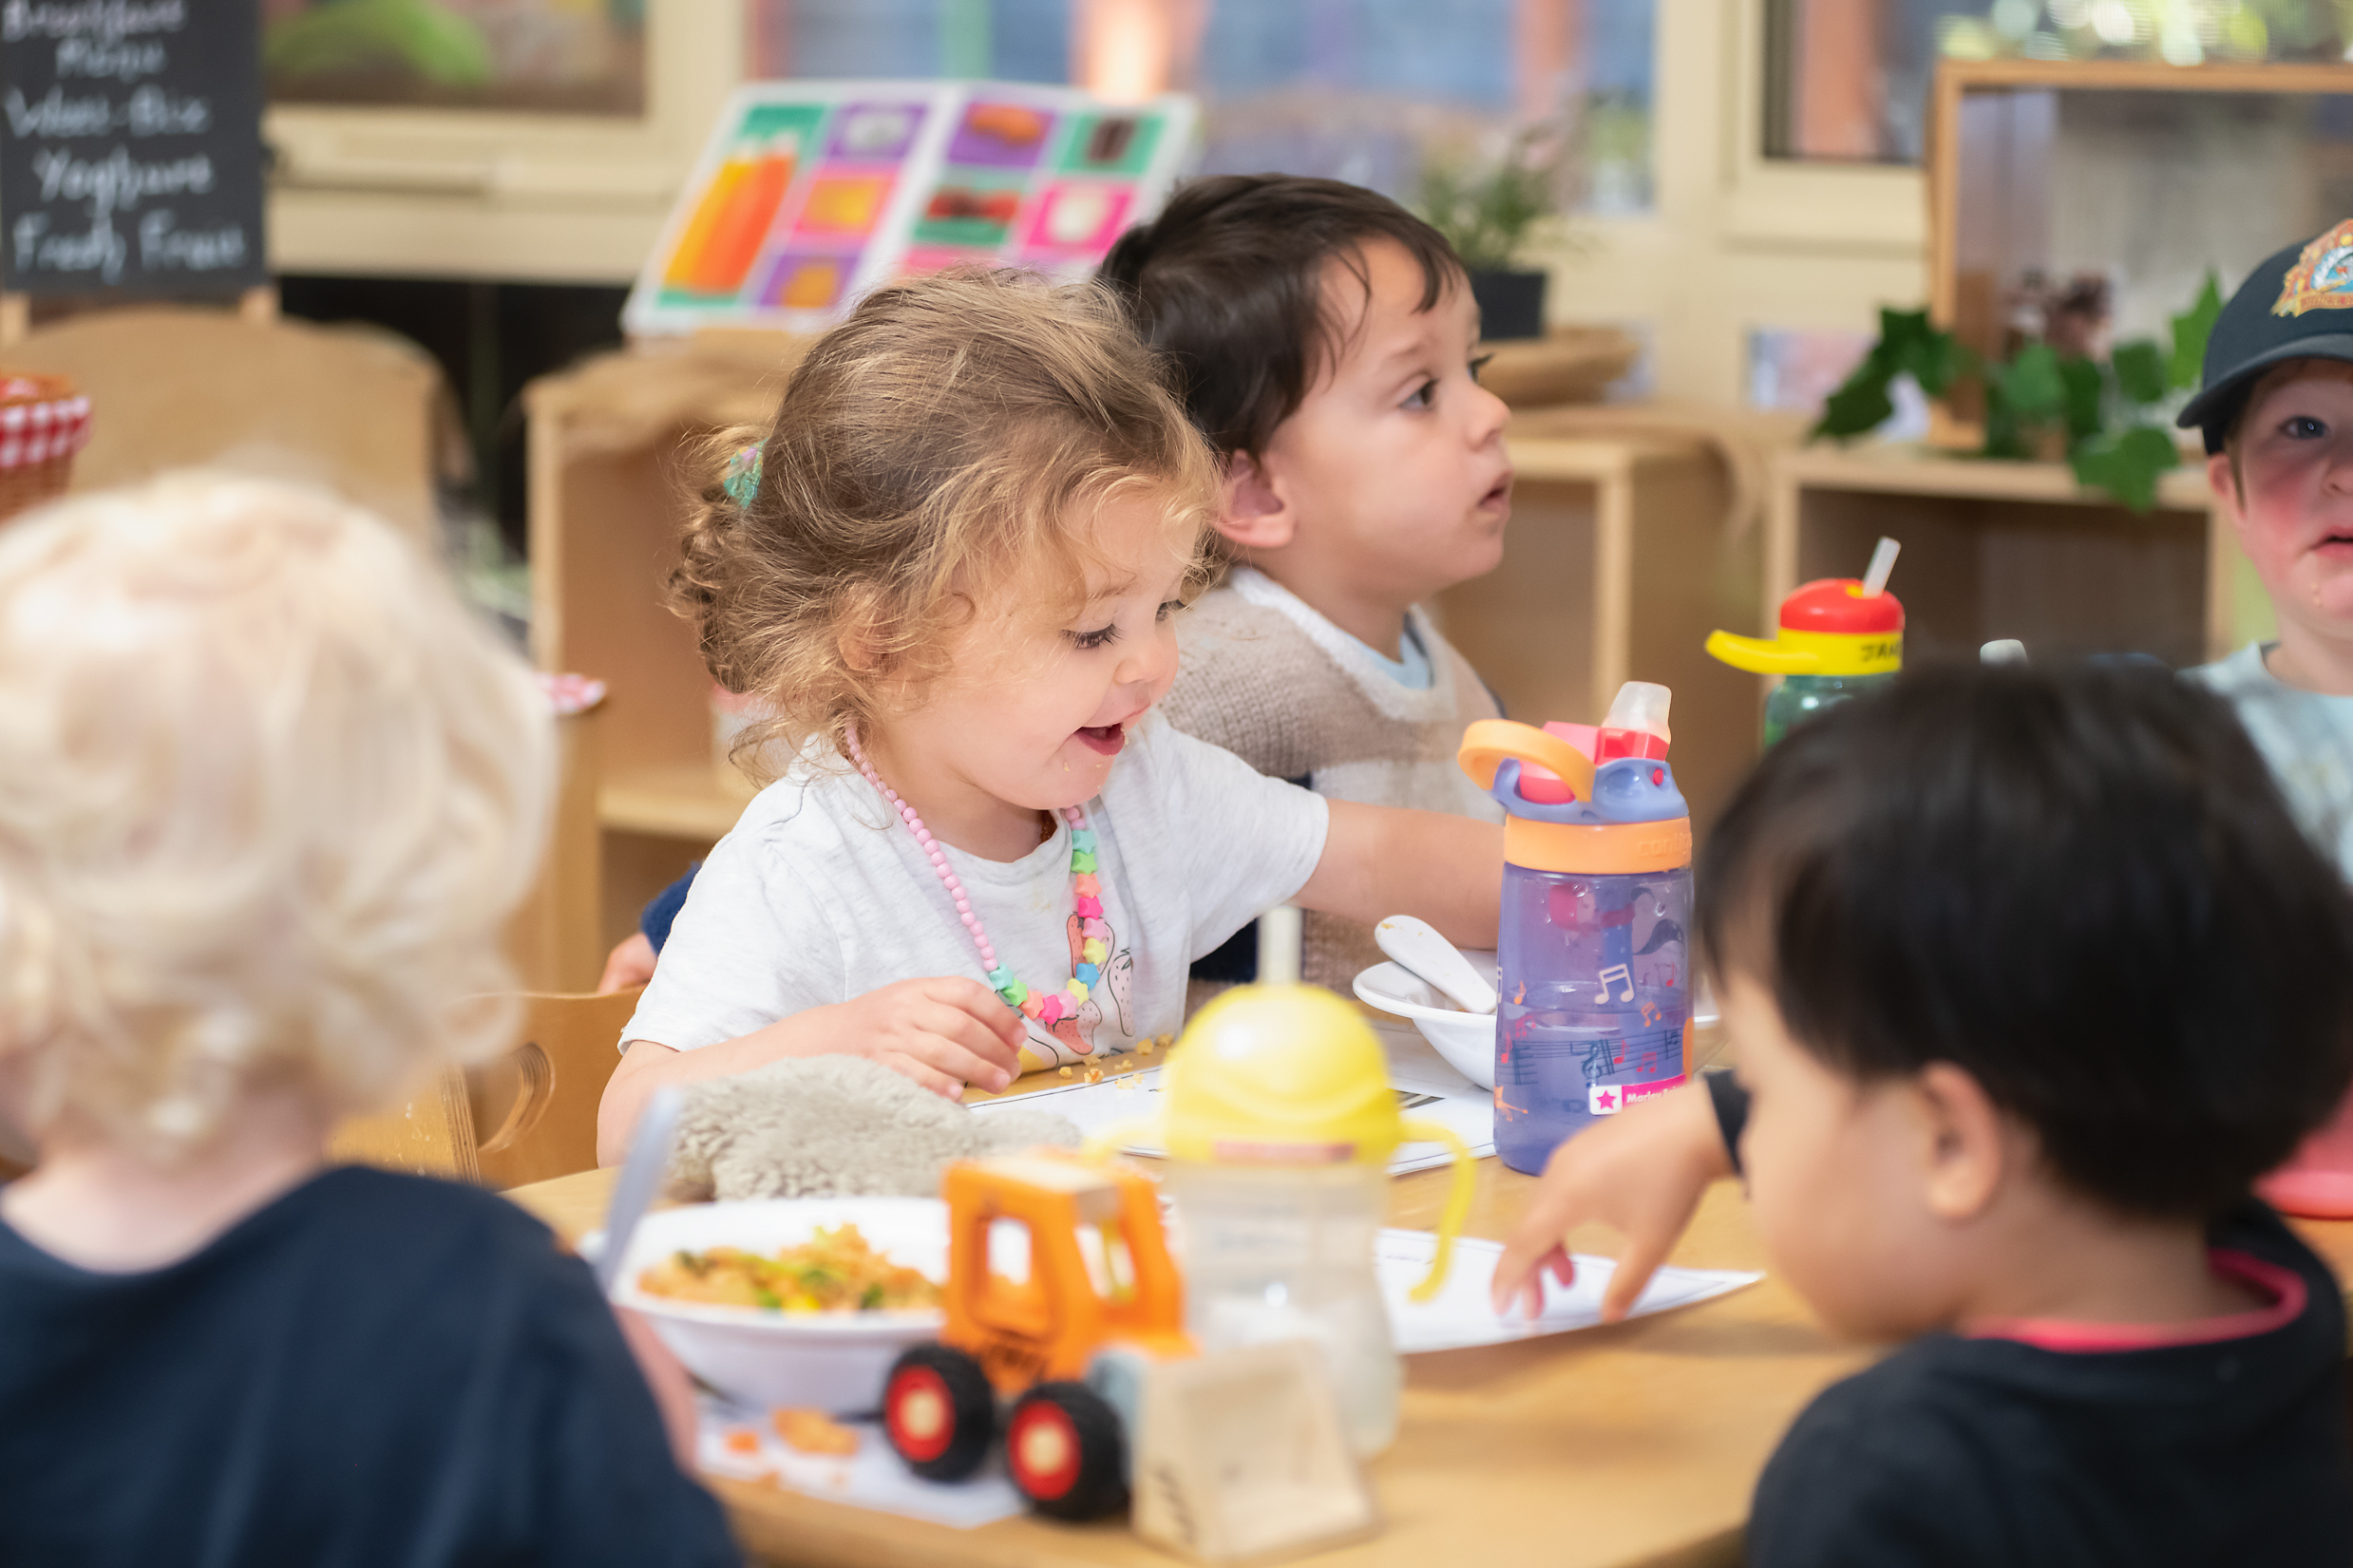 children fussy eaters enjoying a meal